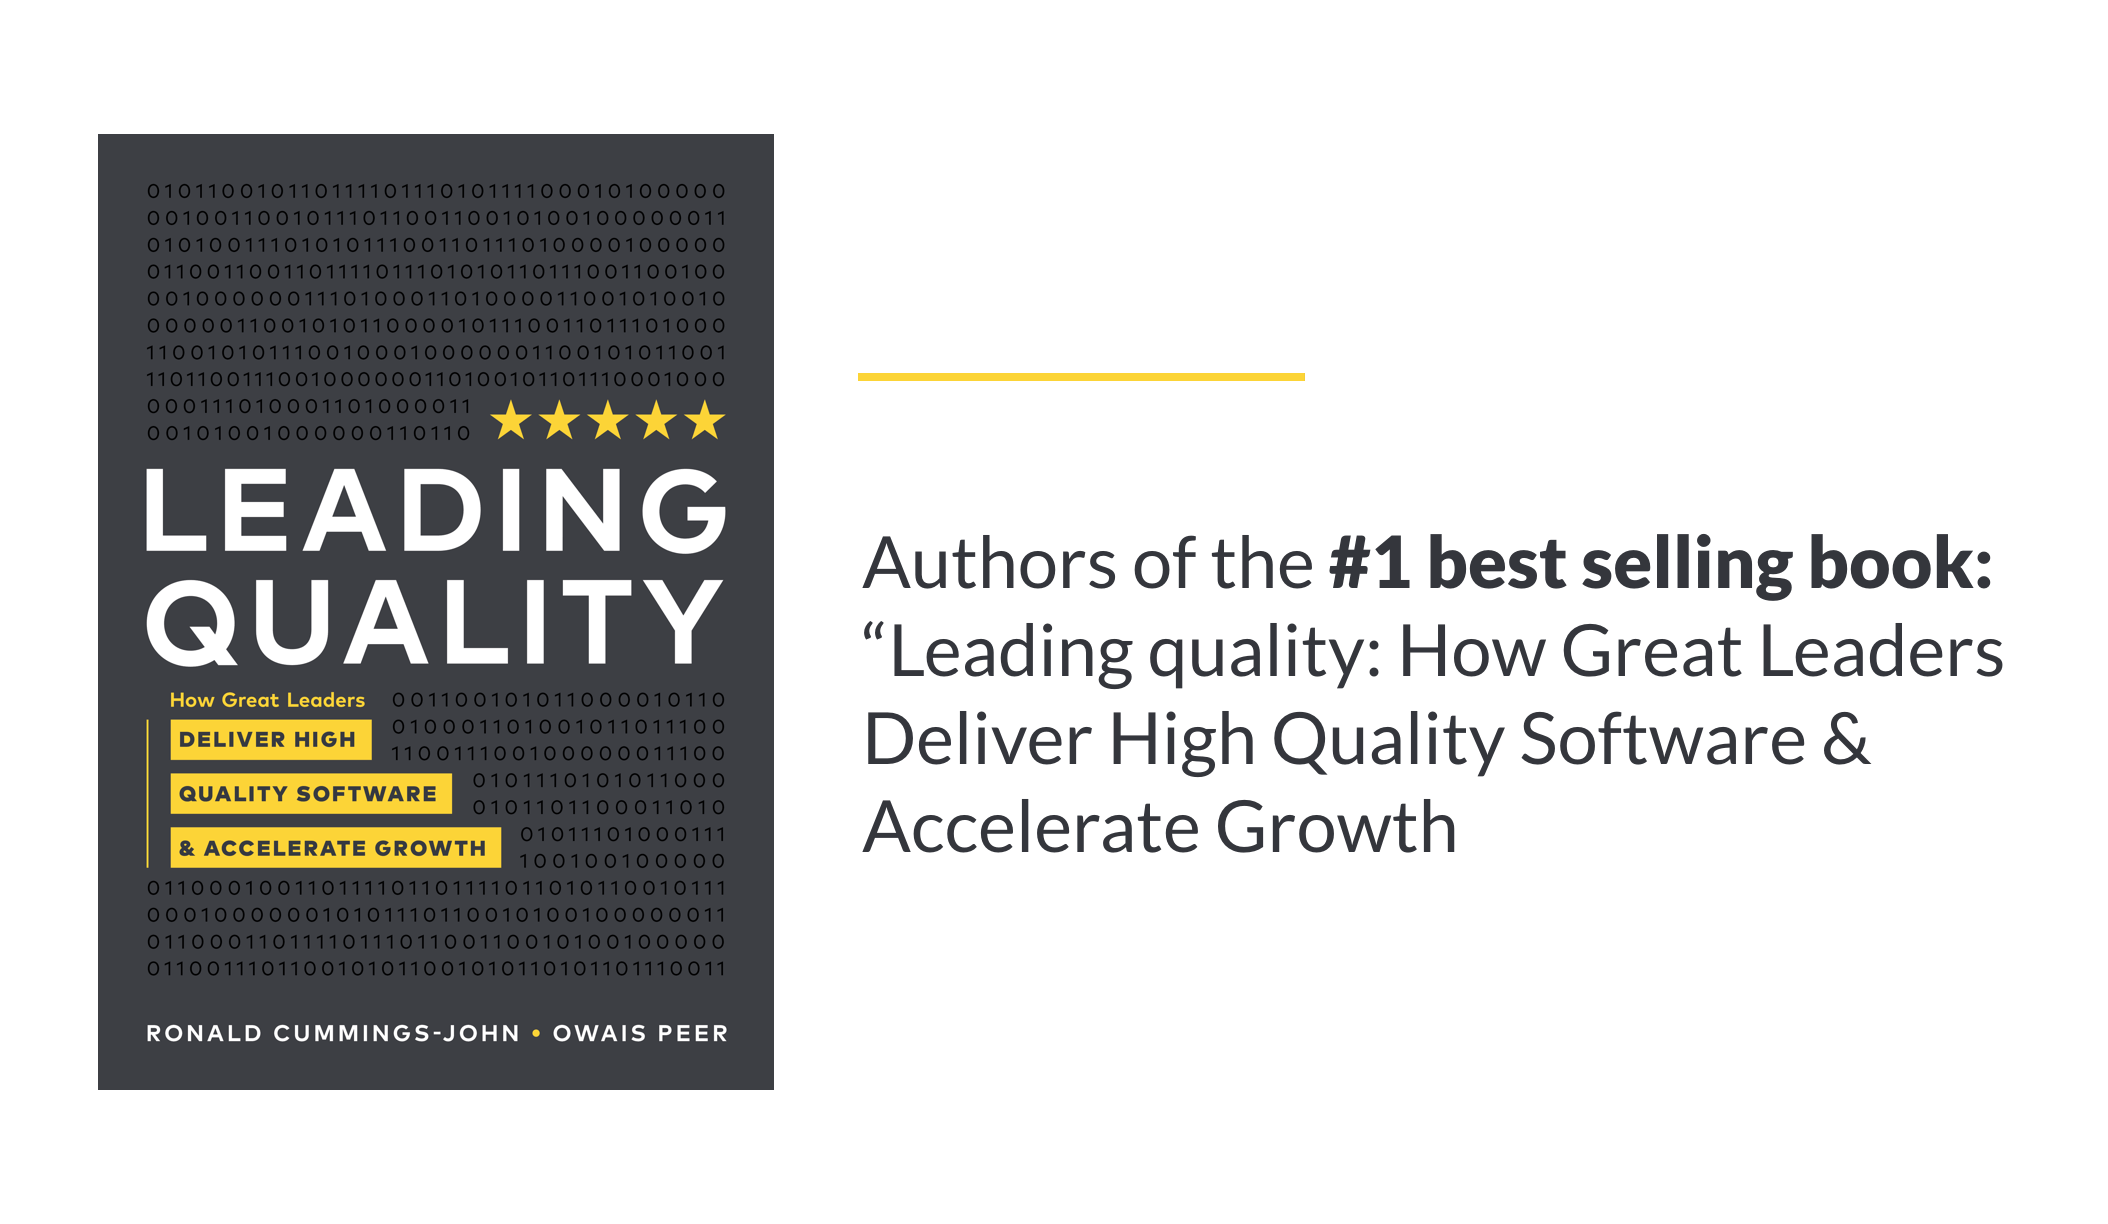 image-leading-quality-book-quote@2x